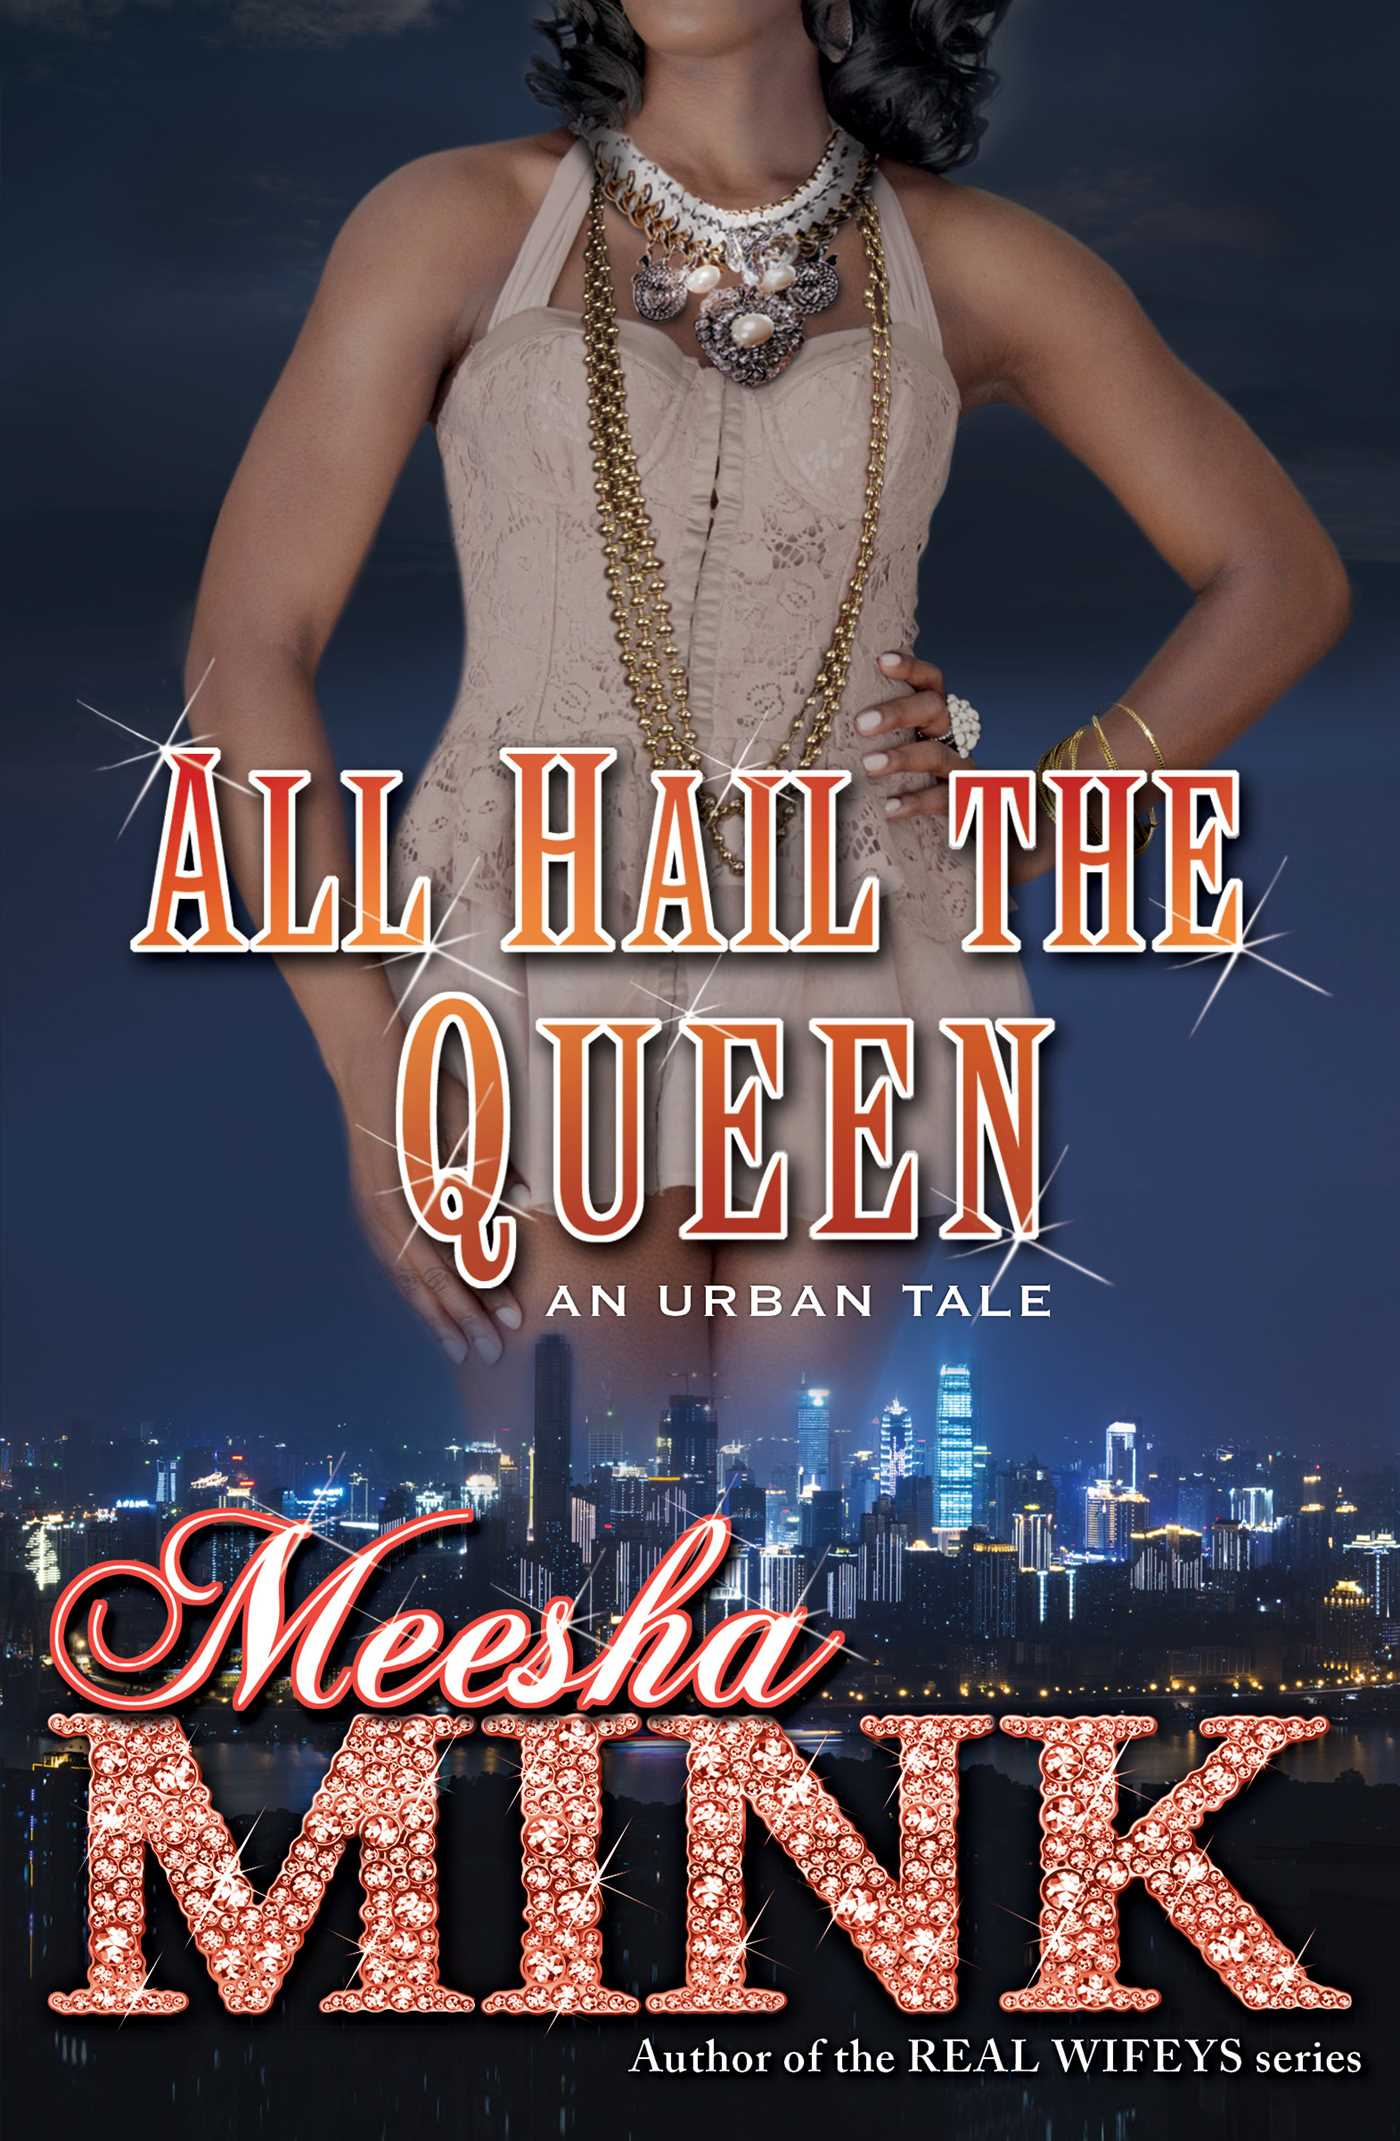 Book Cover Image (jpg): All Hail the Queen